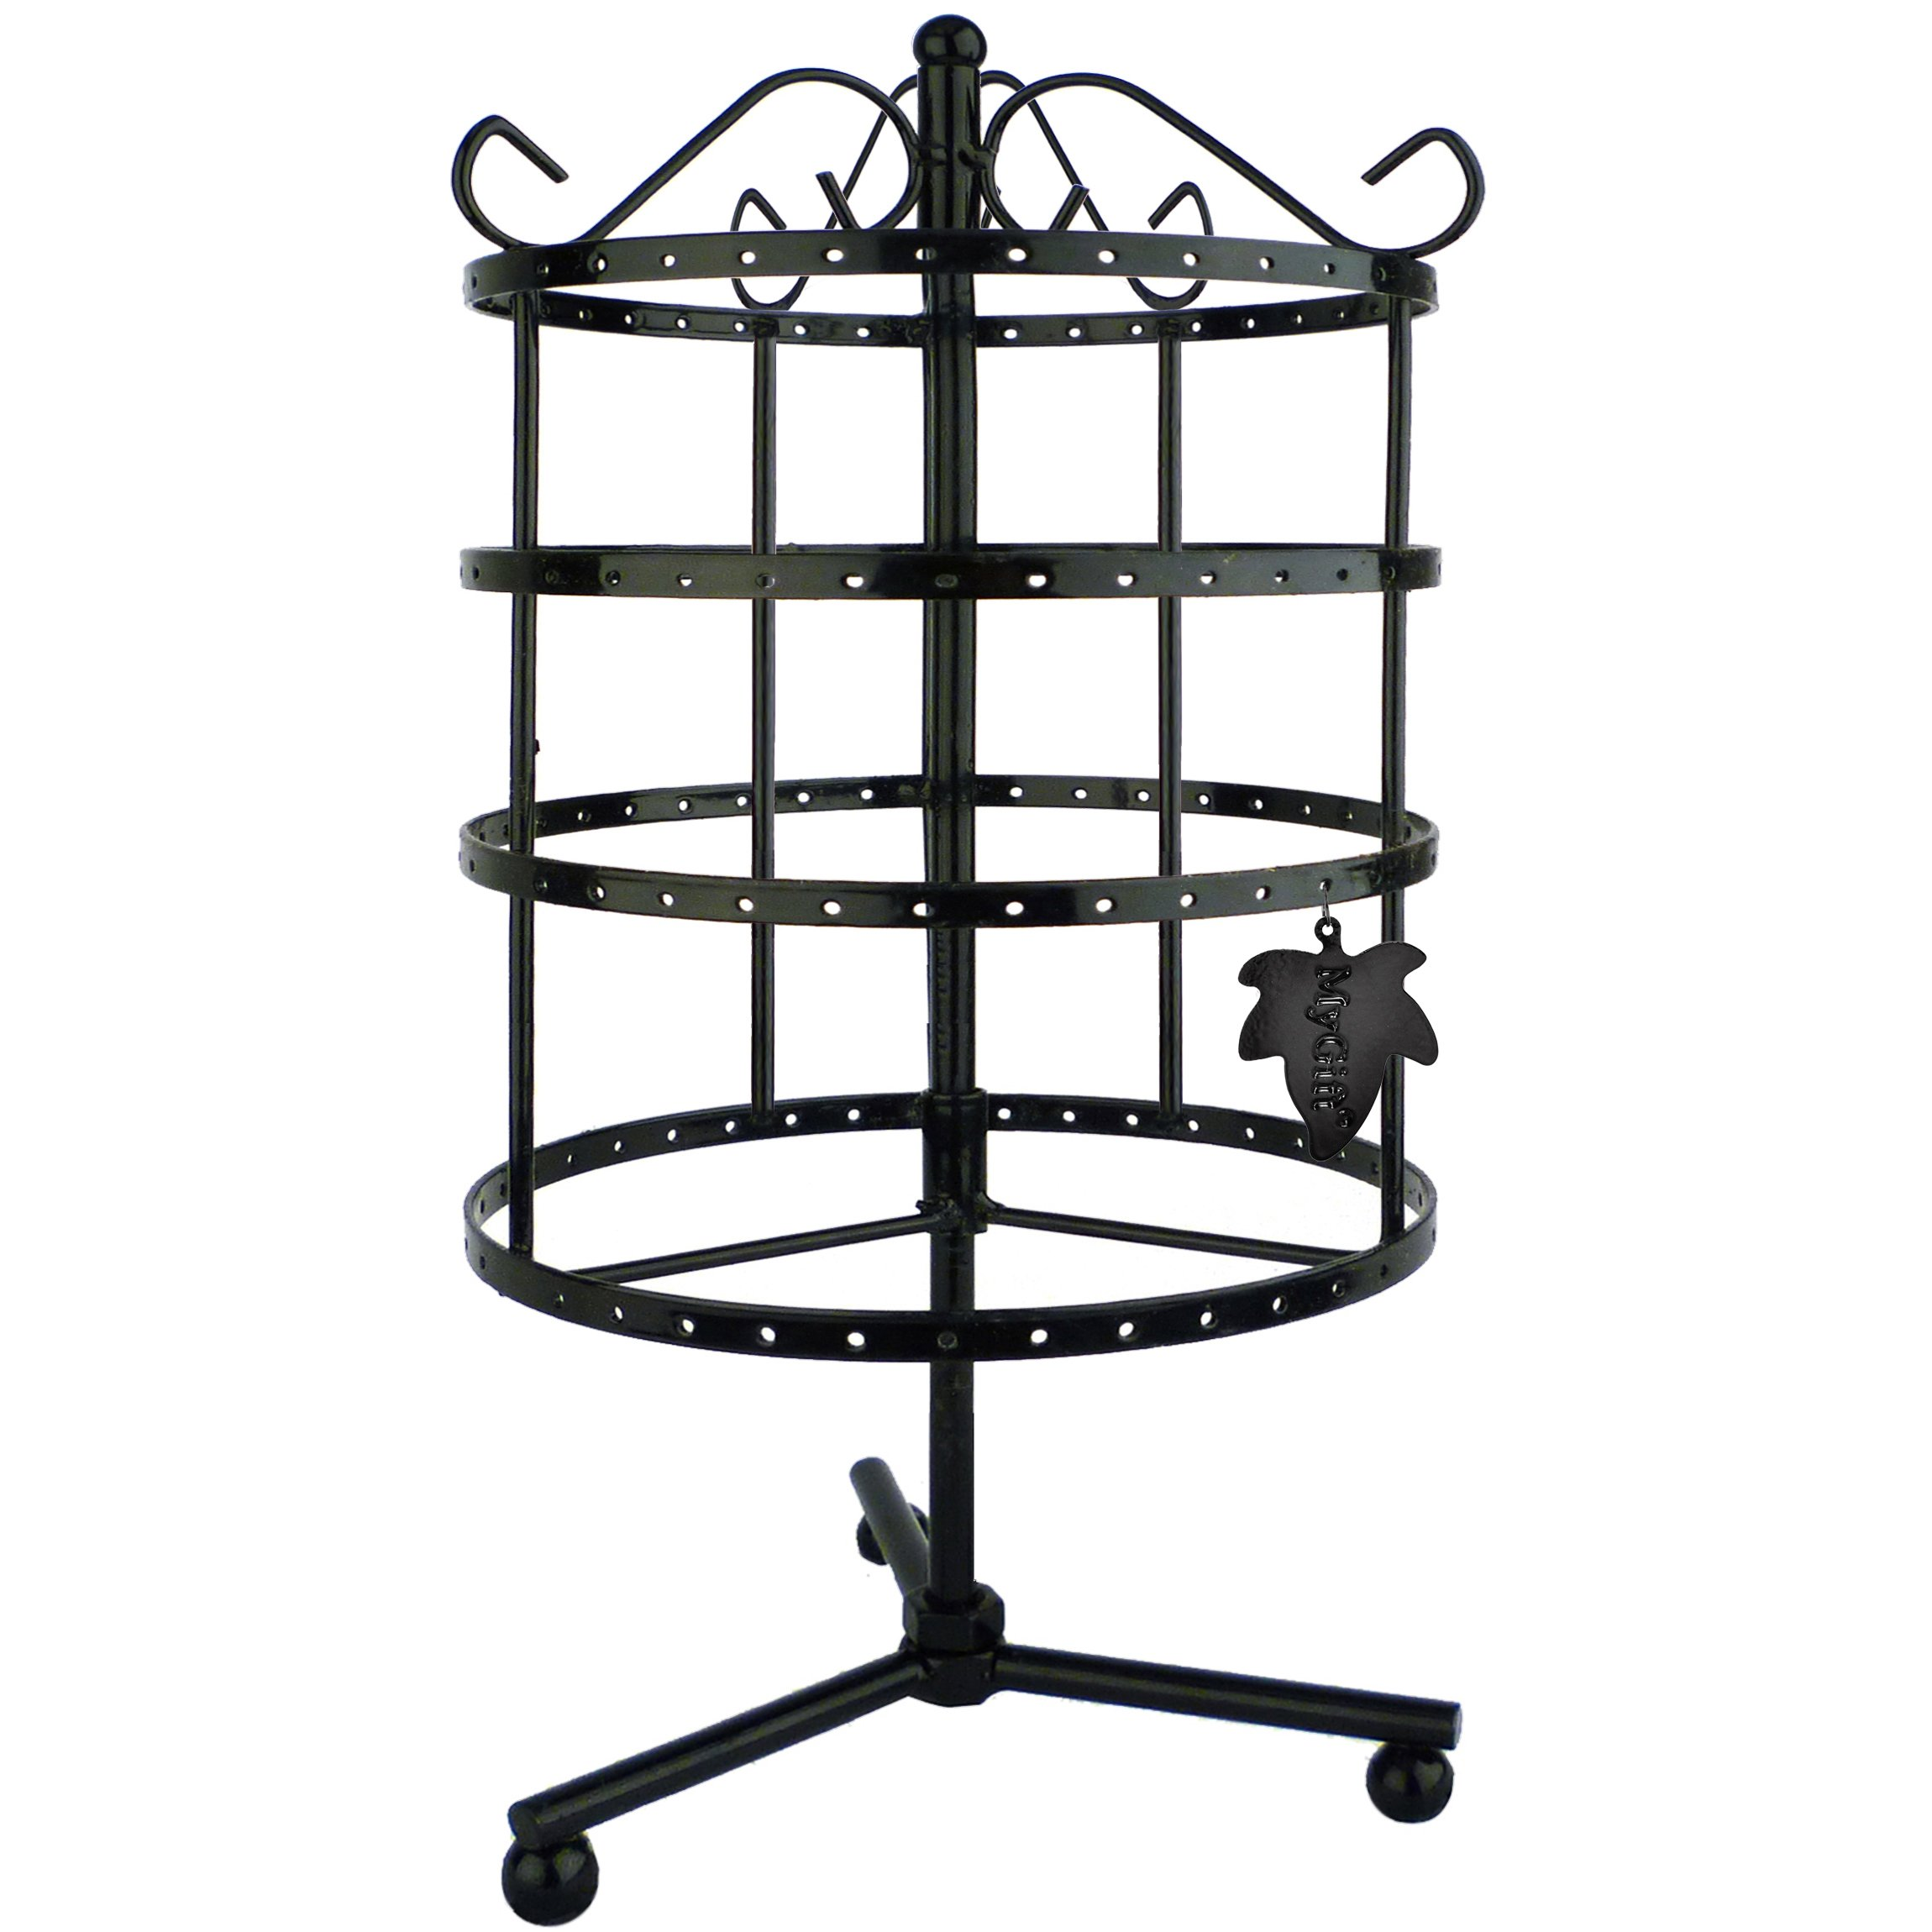 MyGift 4 Tiers Black Rotating Spin Table 92 Pairs Earring Organizer/Jewelry Display Stand